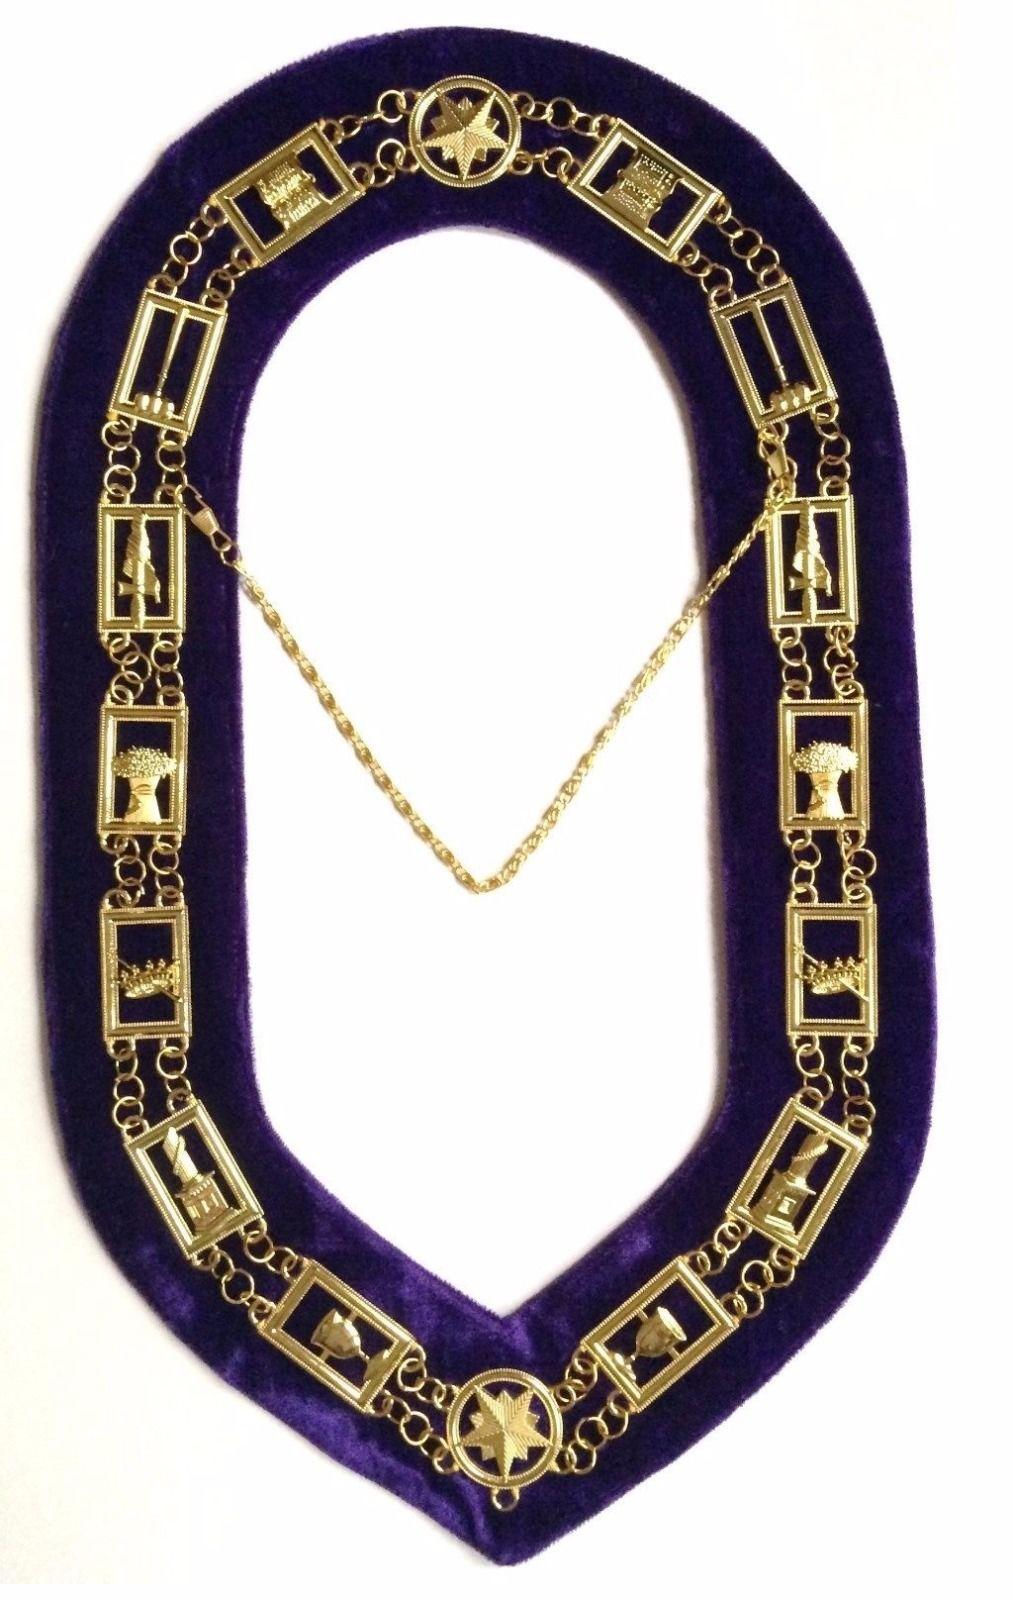 OES-Order-of-Star-Chain-Collar-Regalia-Dark-_57